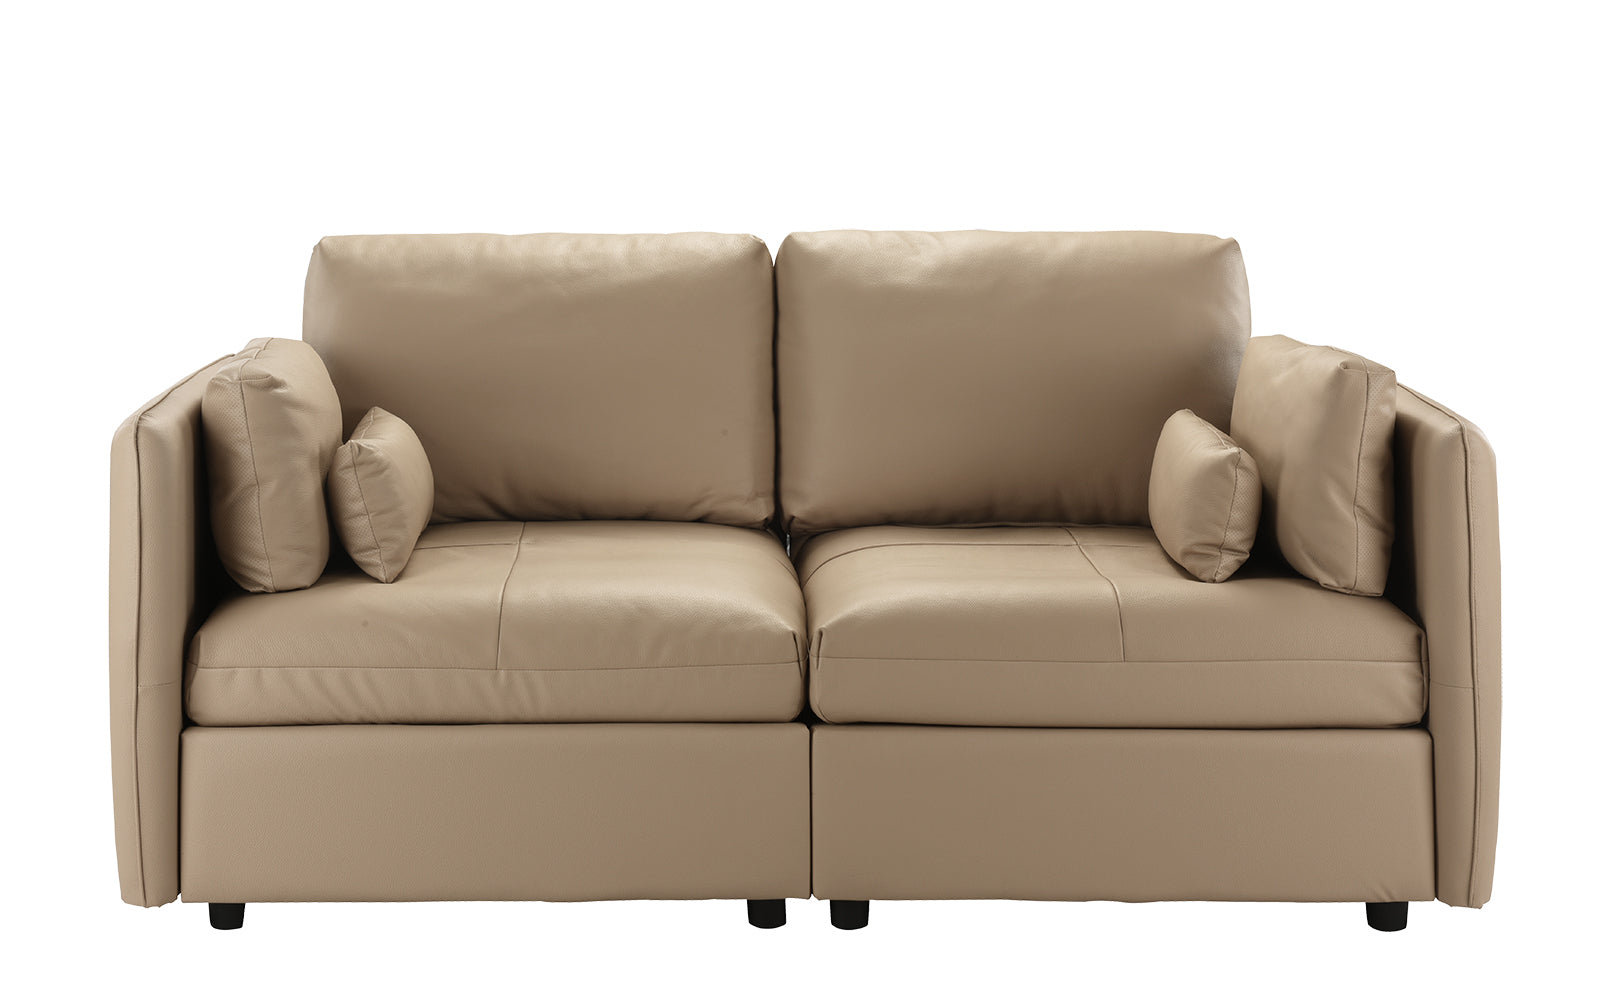 Faux Leather Loveseat Image